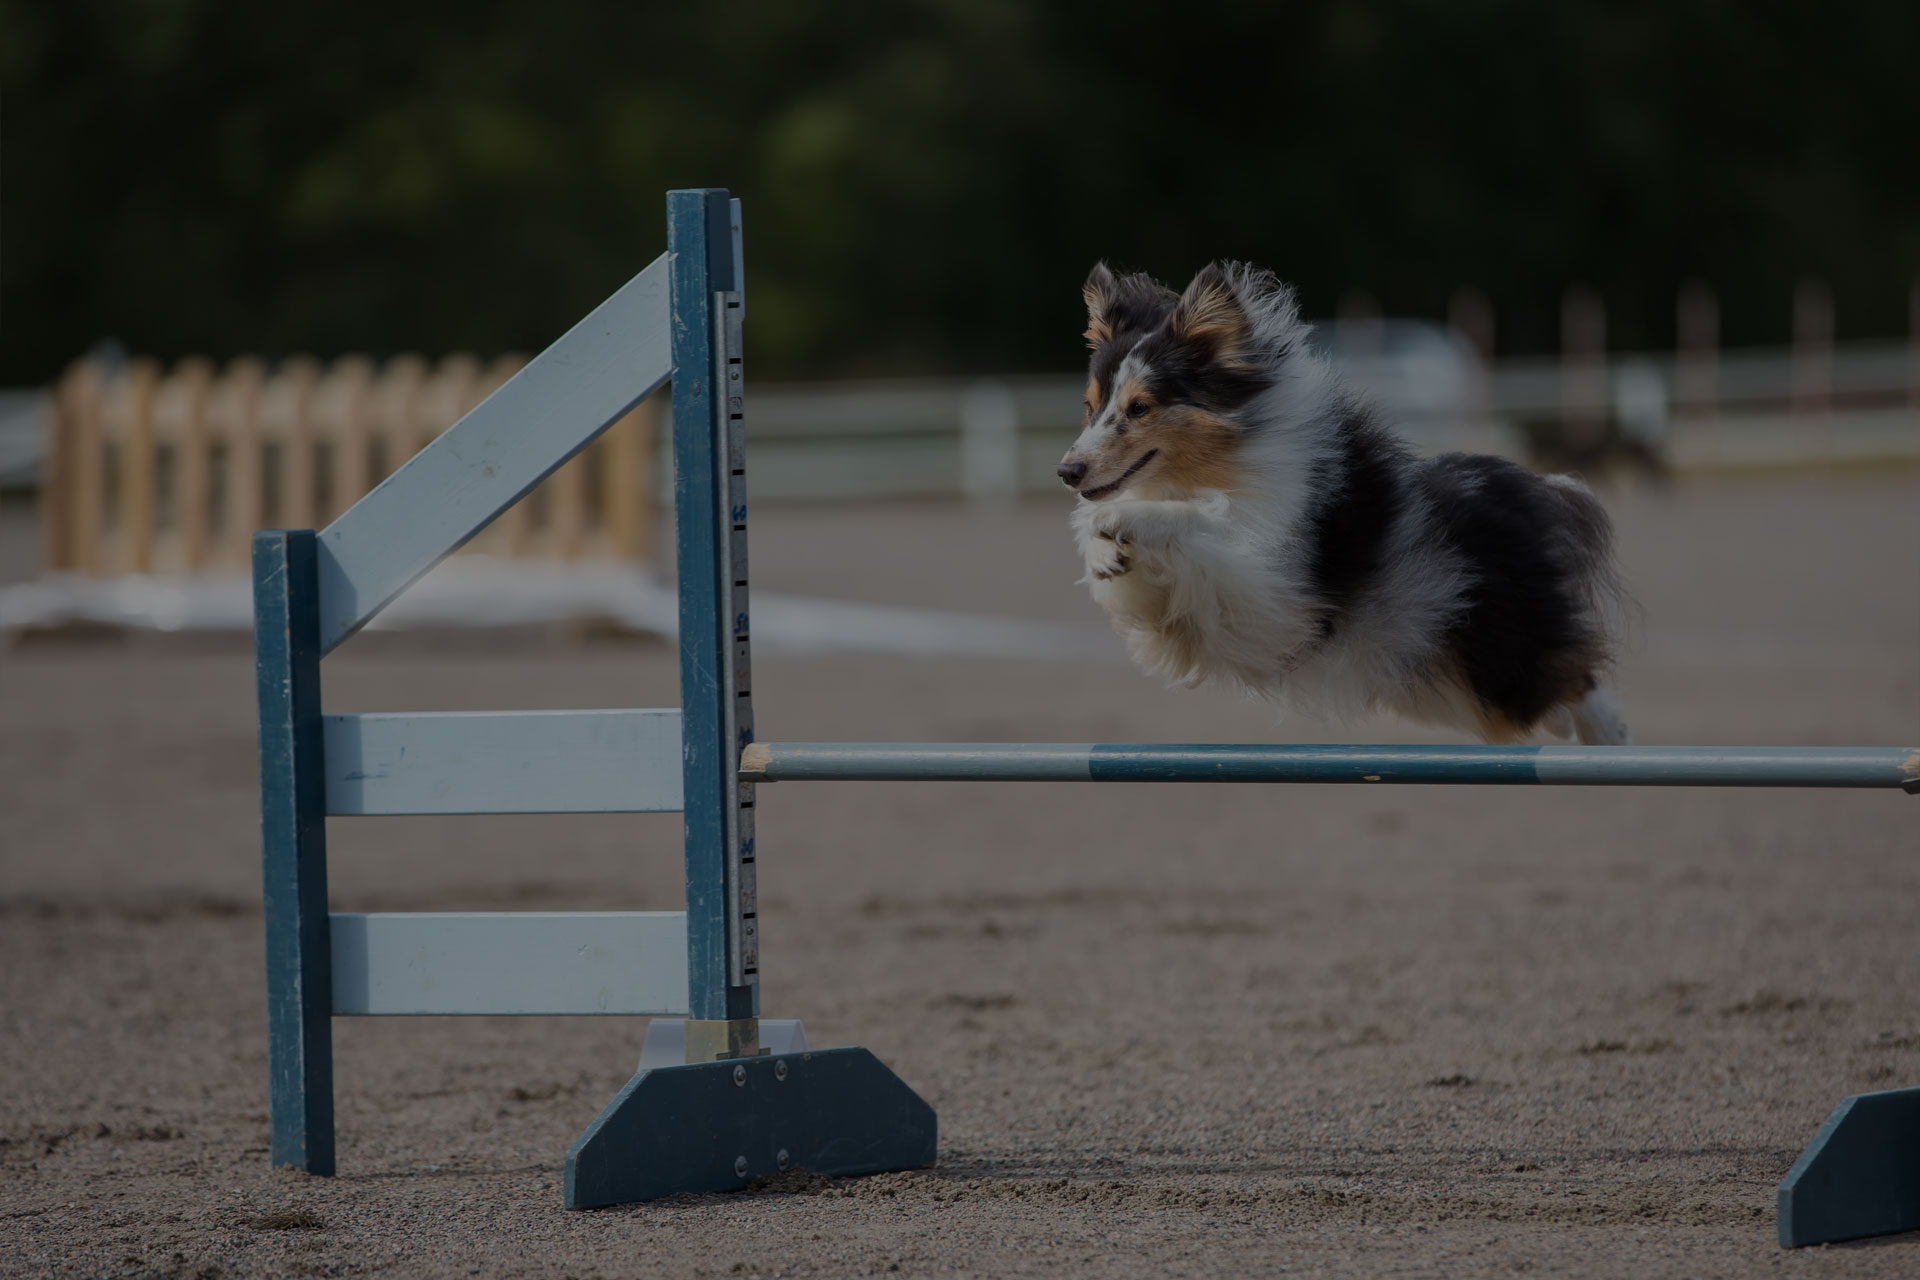 Dog jumping on hurdle